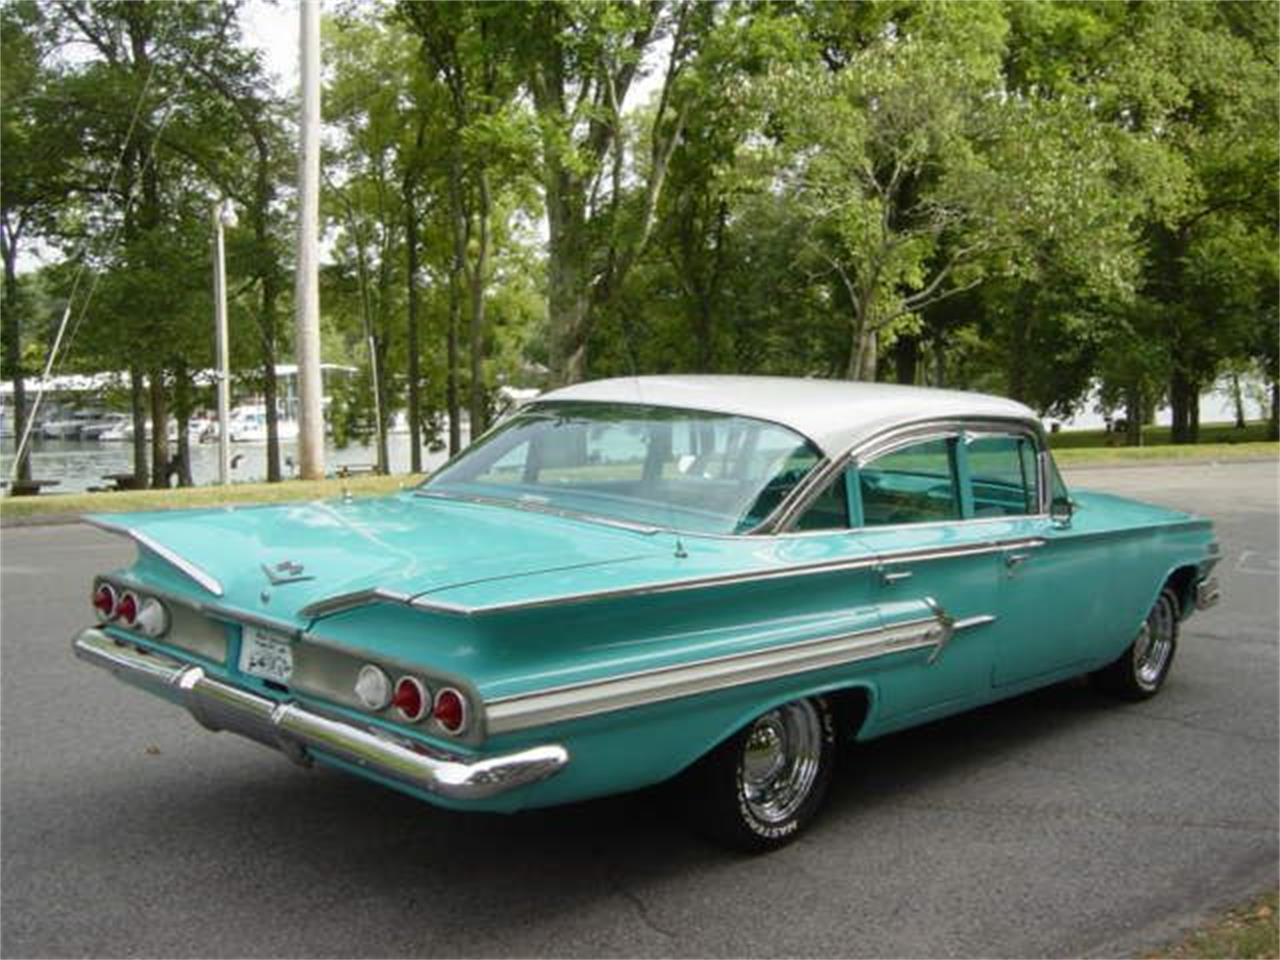 Large Picture of 1960 Chevrolet Impala located in Hendersonville Tennessee - $13,900.00 Offered by Maple Motors - OFIM